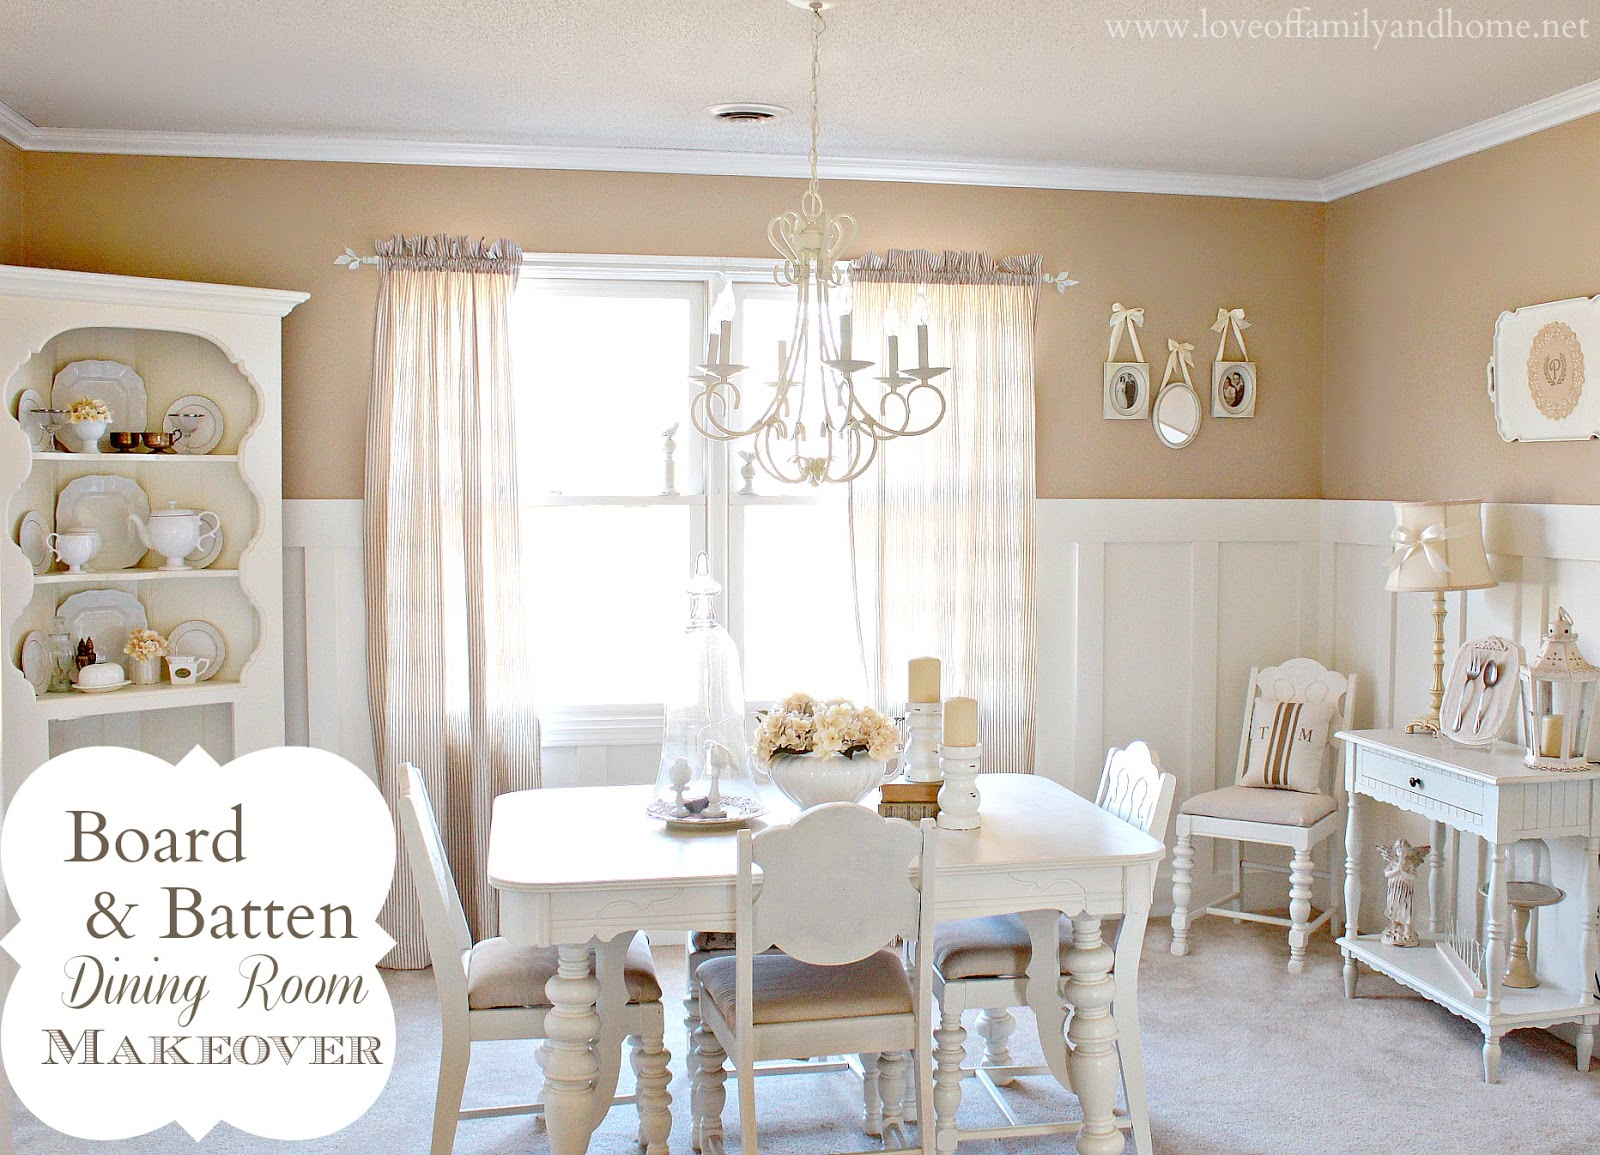 board u0026 batten dining room makeover love of family u0026 home